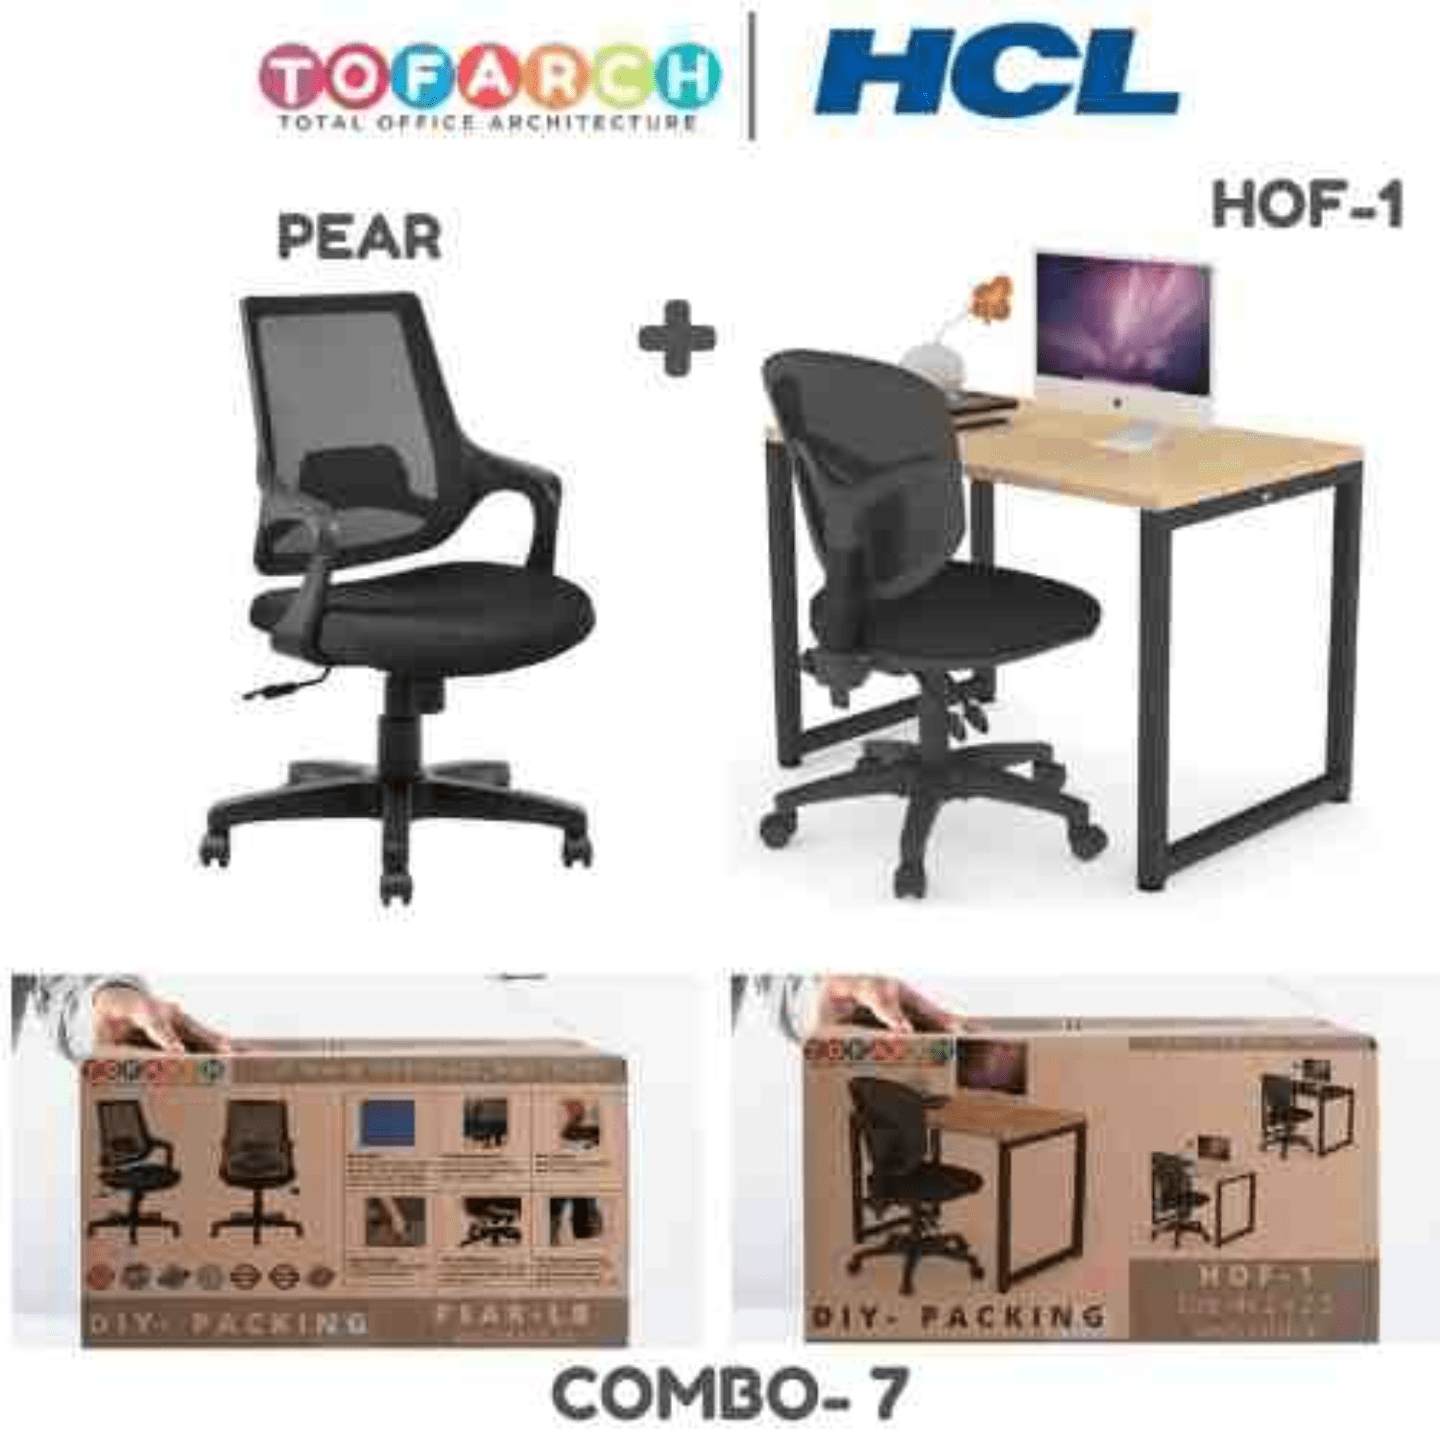 Work from Home Combo 7 PEAR + HOF-1